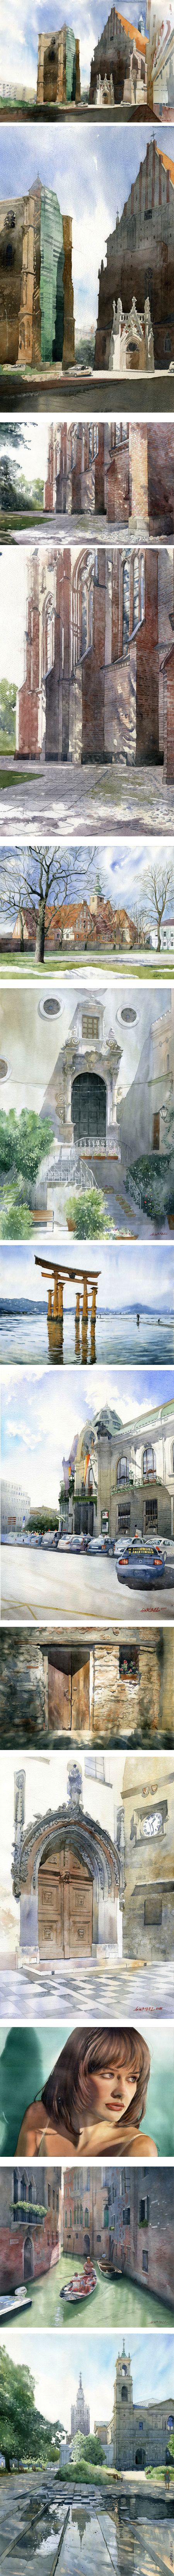 Grzegorz Wrobel, watercolor architectural rendering